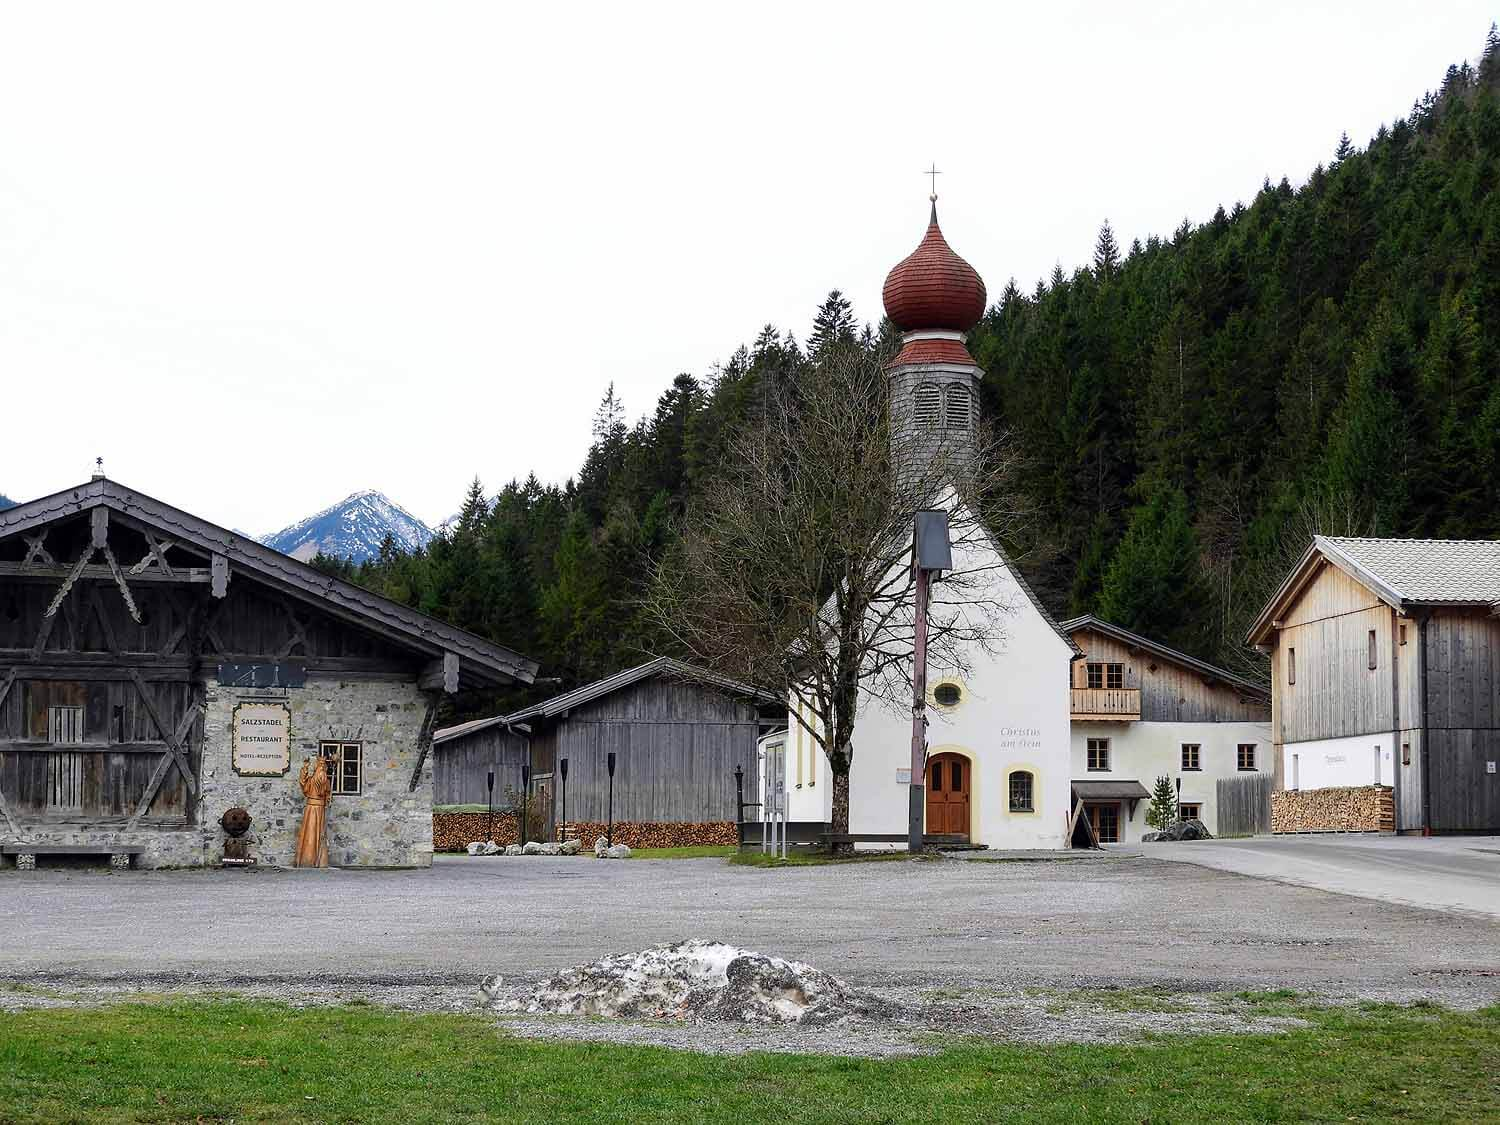 austria-ruette-church.JPG